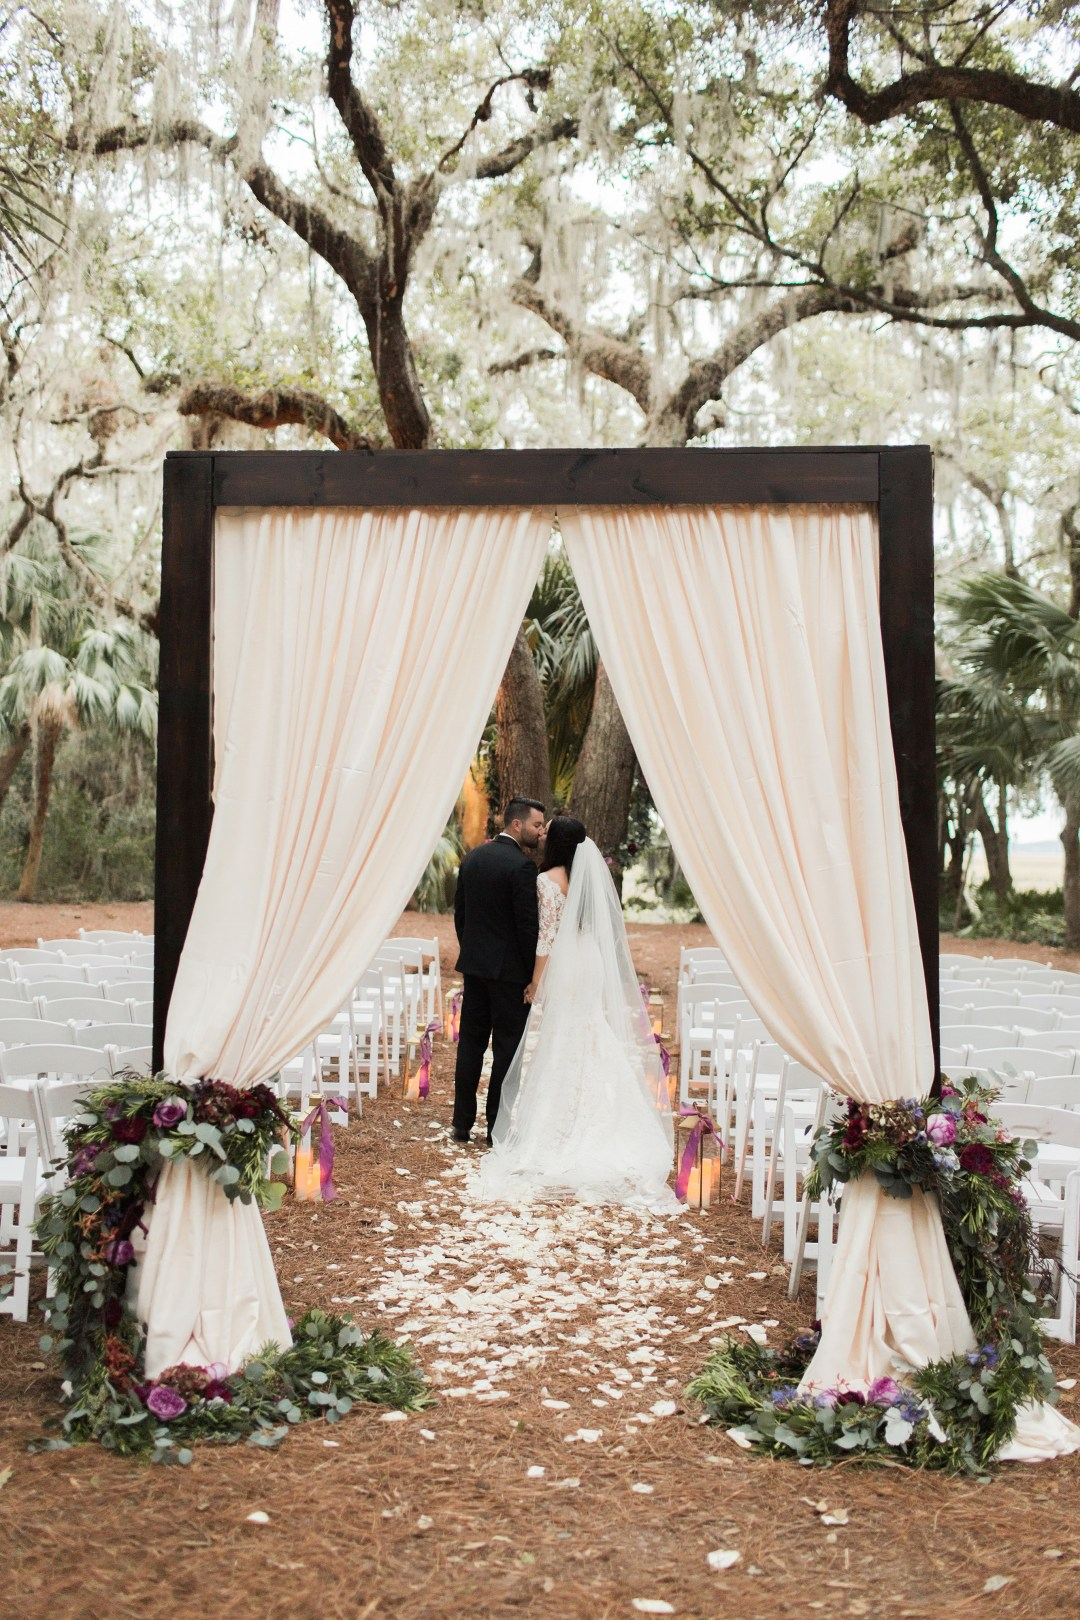 Florida fall wedding venue, Omni Amelia Island Plantation wedding, November wedding, wedding inspiration, wedding details, wedding ideas, fall wedding ideas